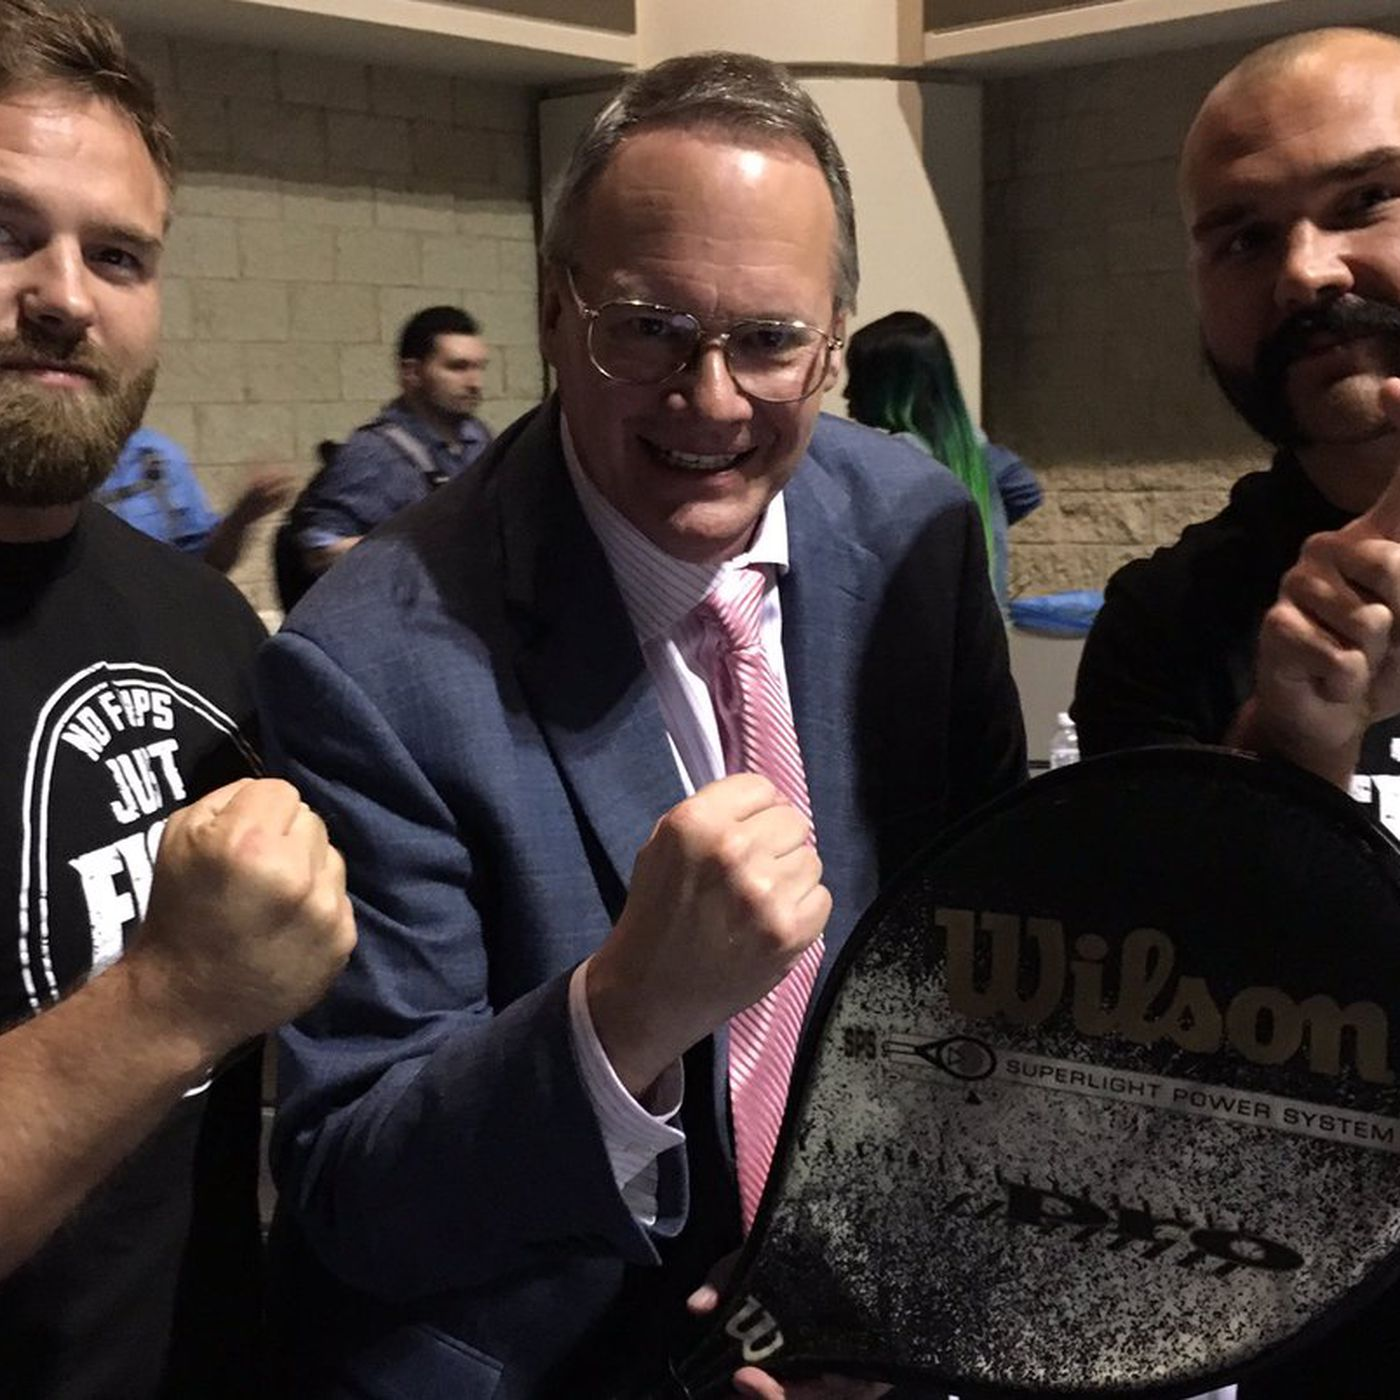 Some Very Good Tweets From The Revival Featuring Jim Cornette